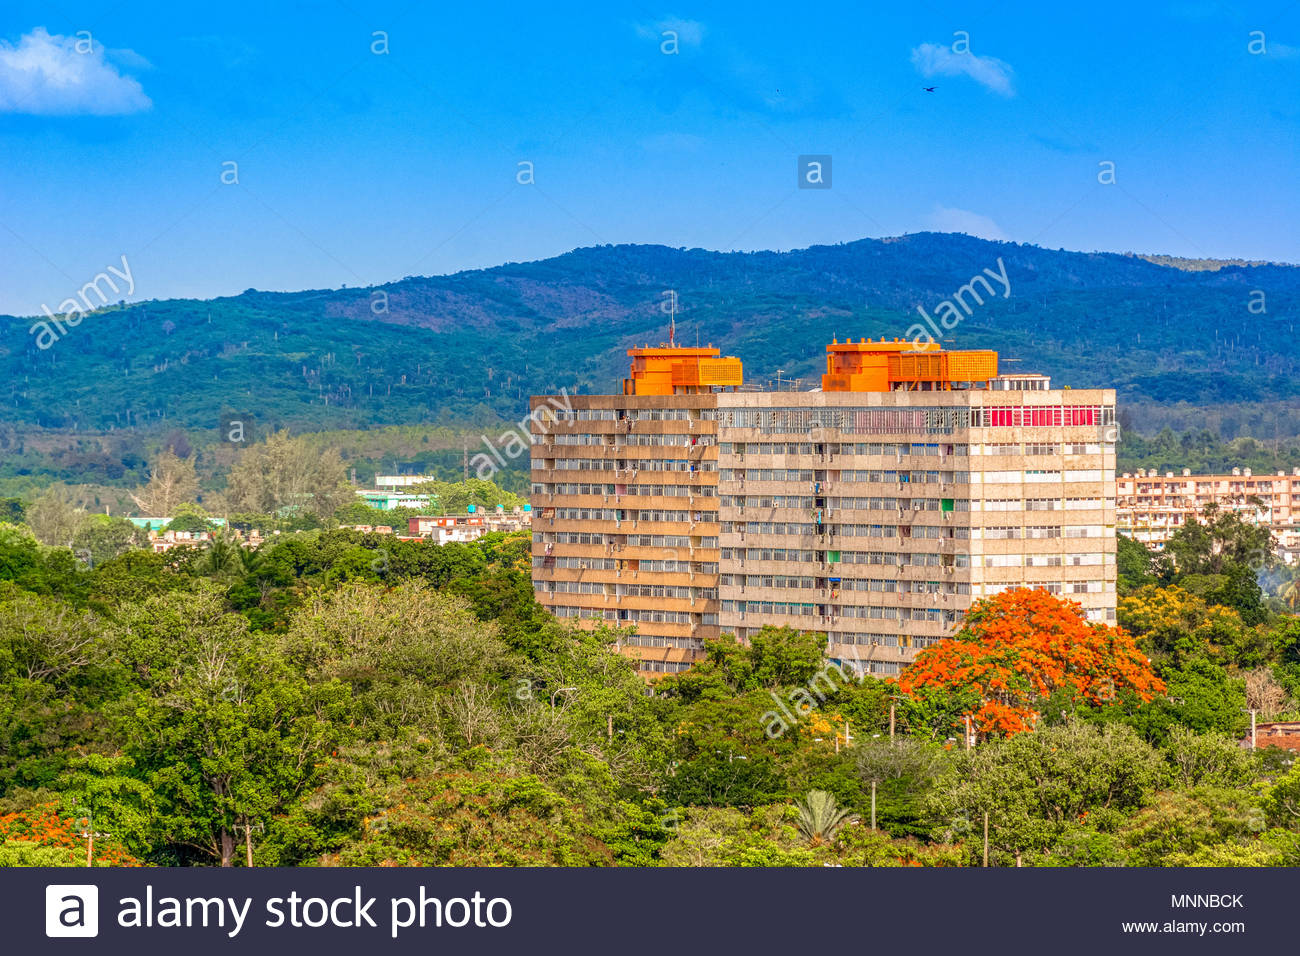 Aerial view of the two iconic 12 stories buildings in the Sandino area in Santa Clara - Stock Image